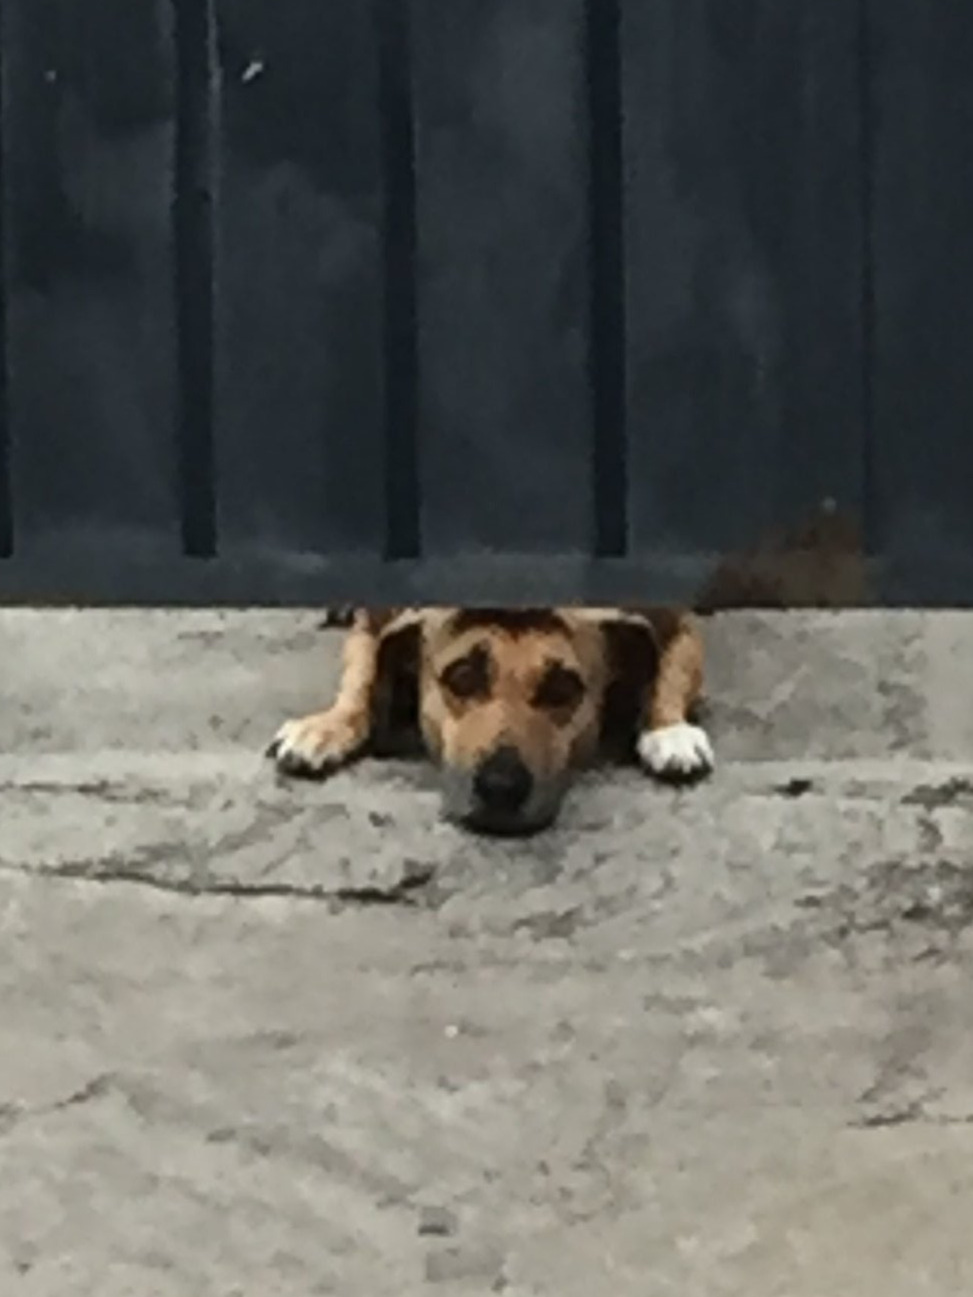 Sad or scary? This dog has enough space under the garage door to peak out and see who it is barking at.